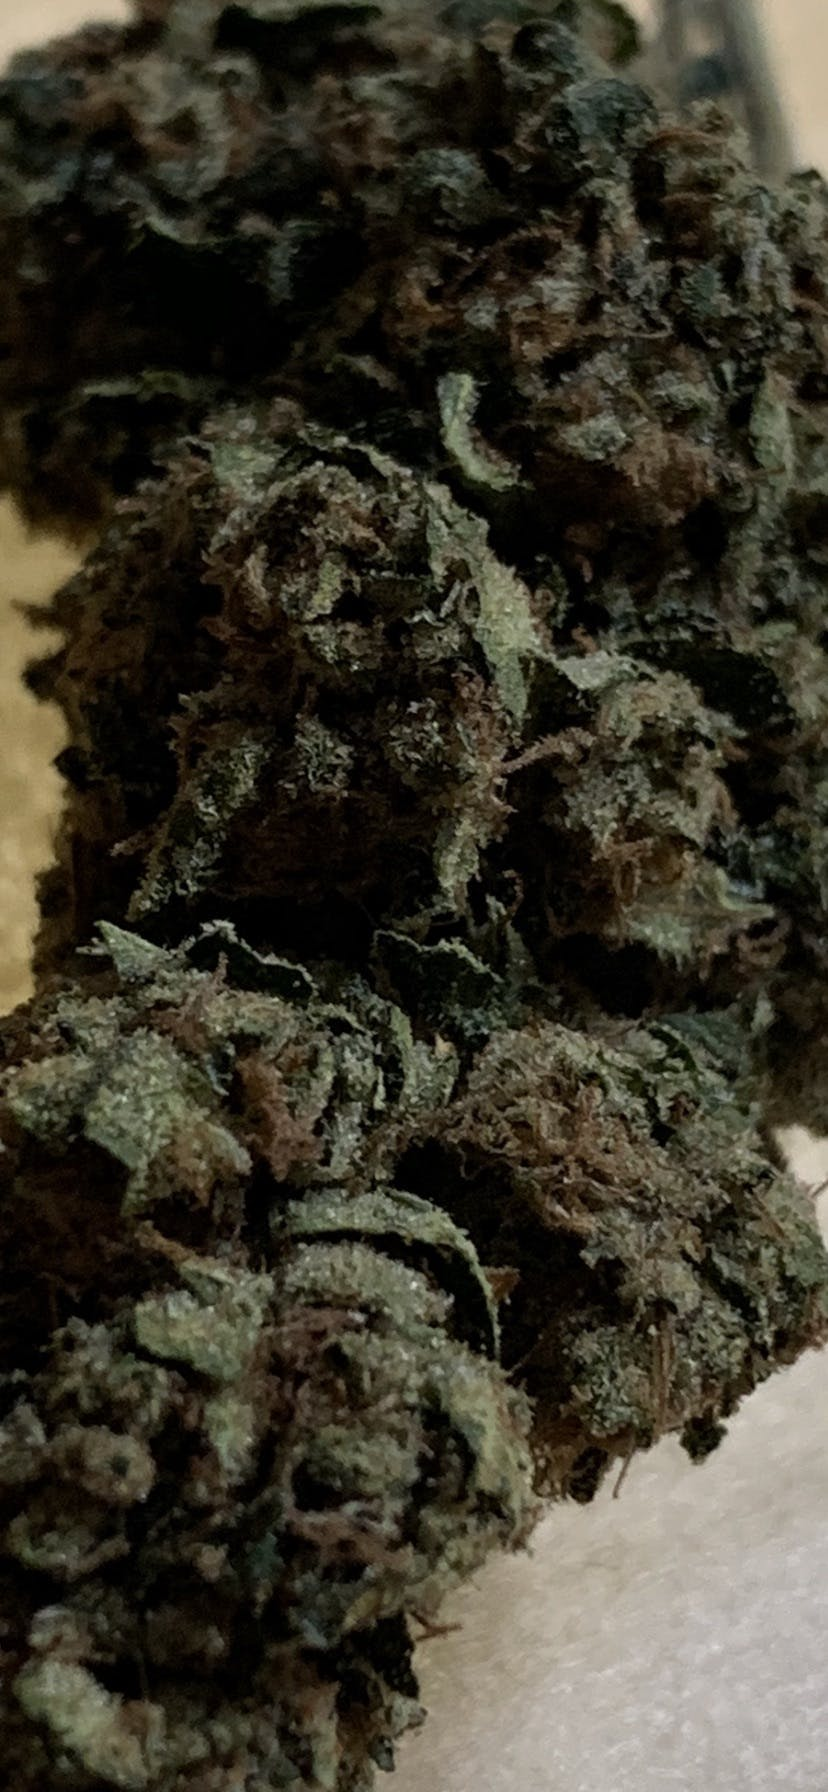 marijuana-dispensaries-2285-south-santa-fe-231-vista-cottage-greens-fire-og